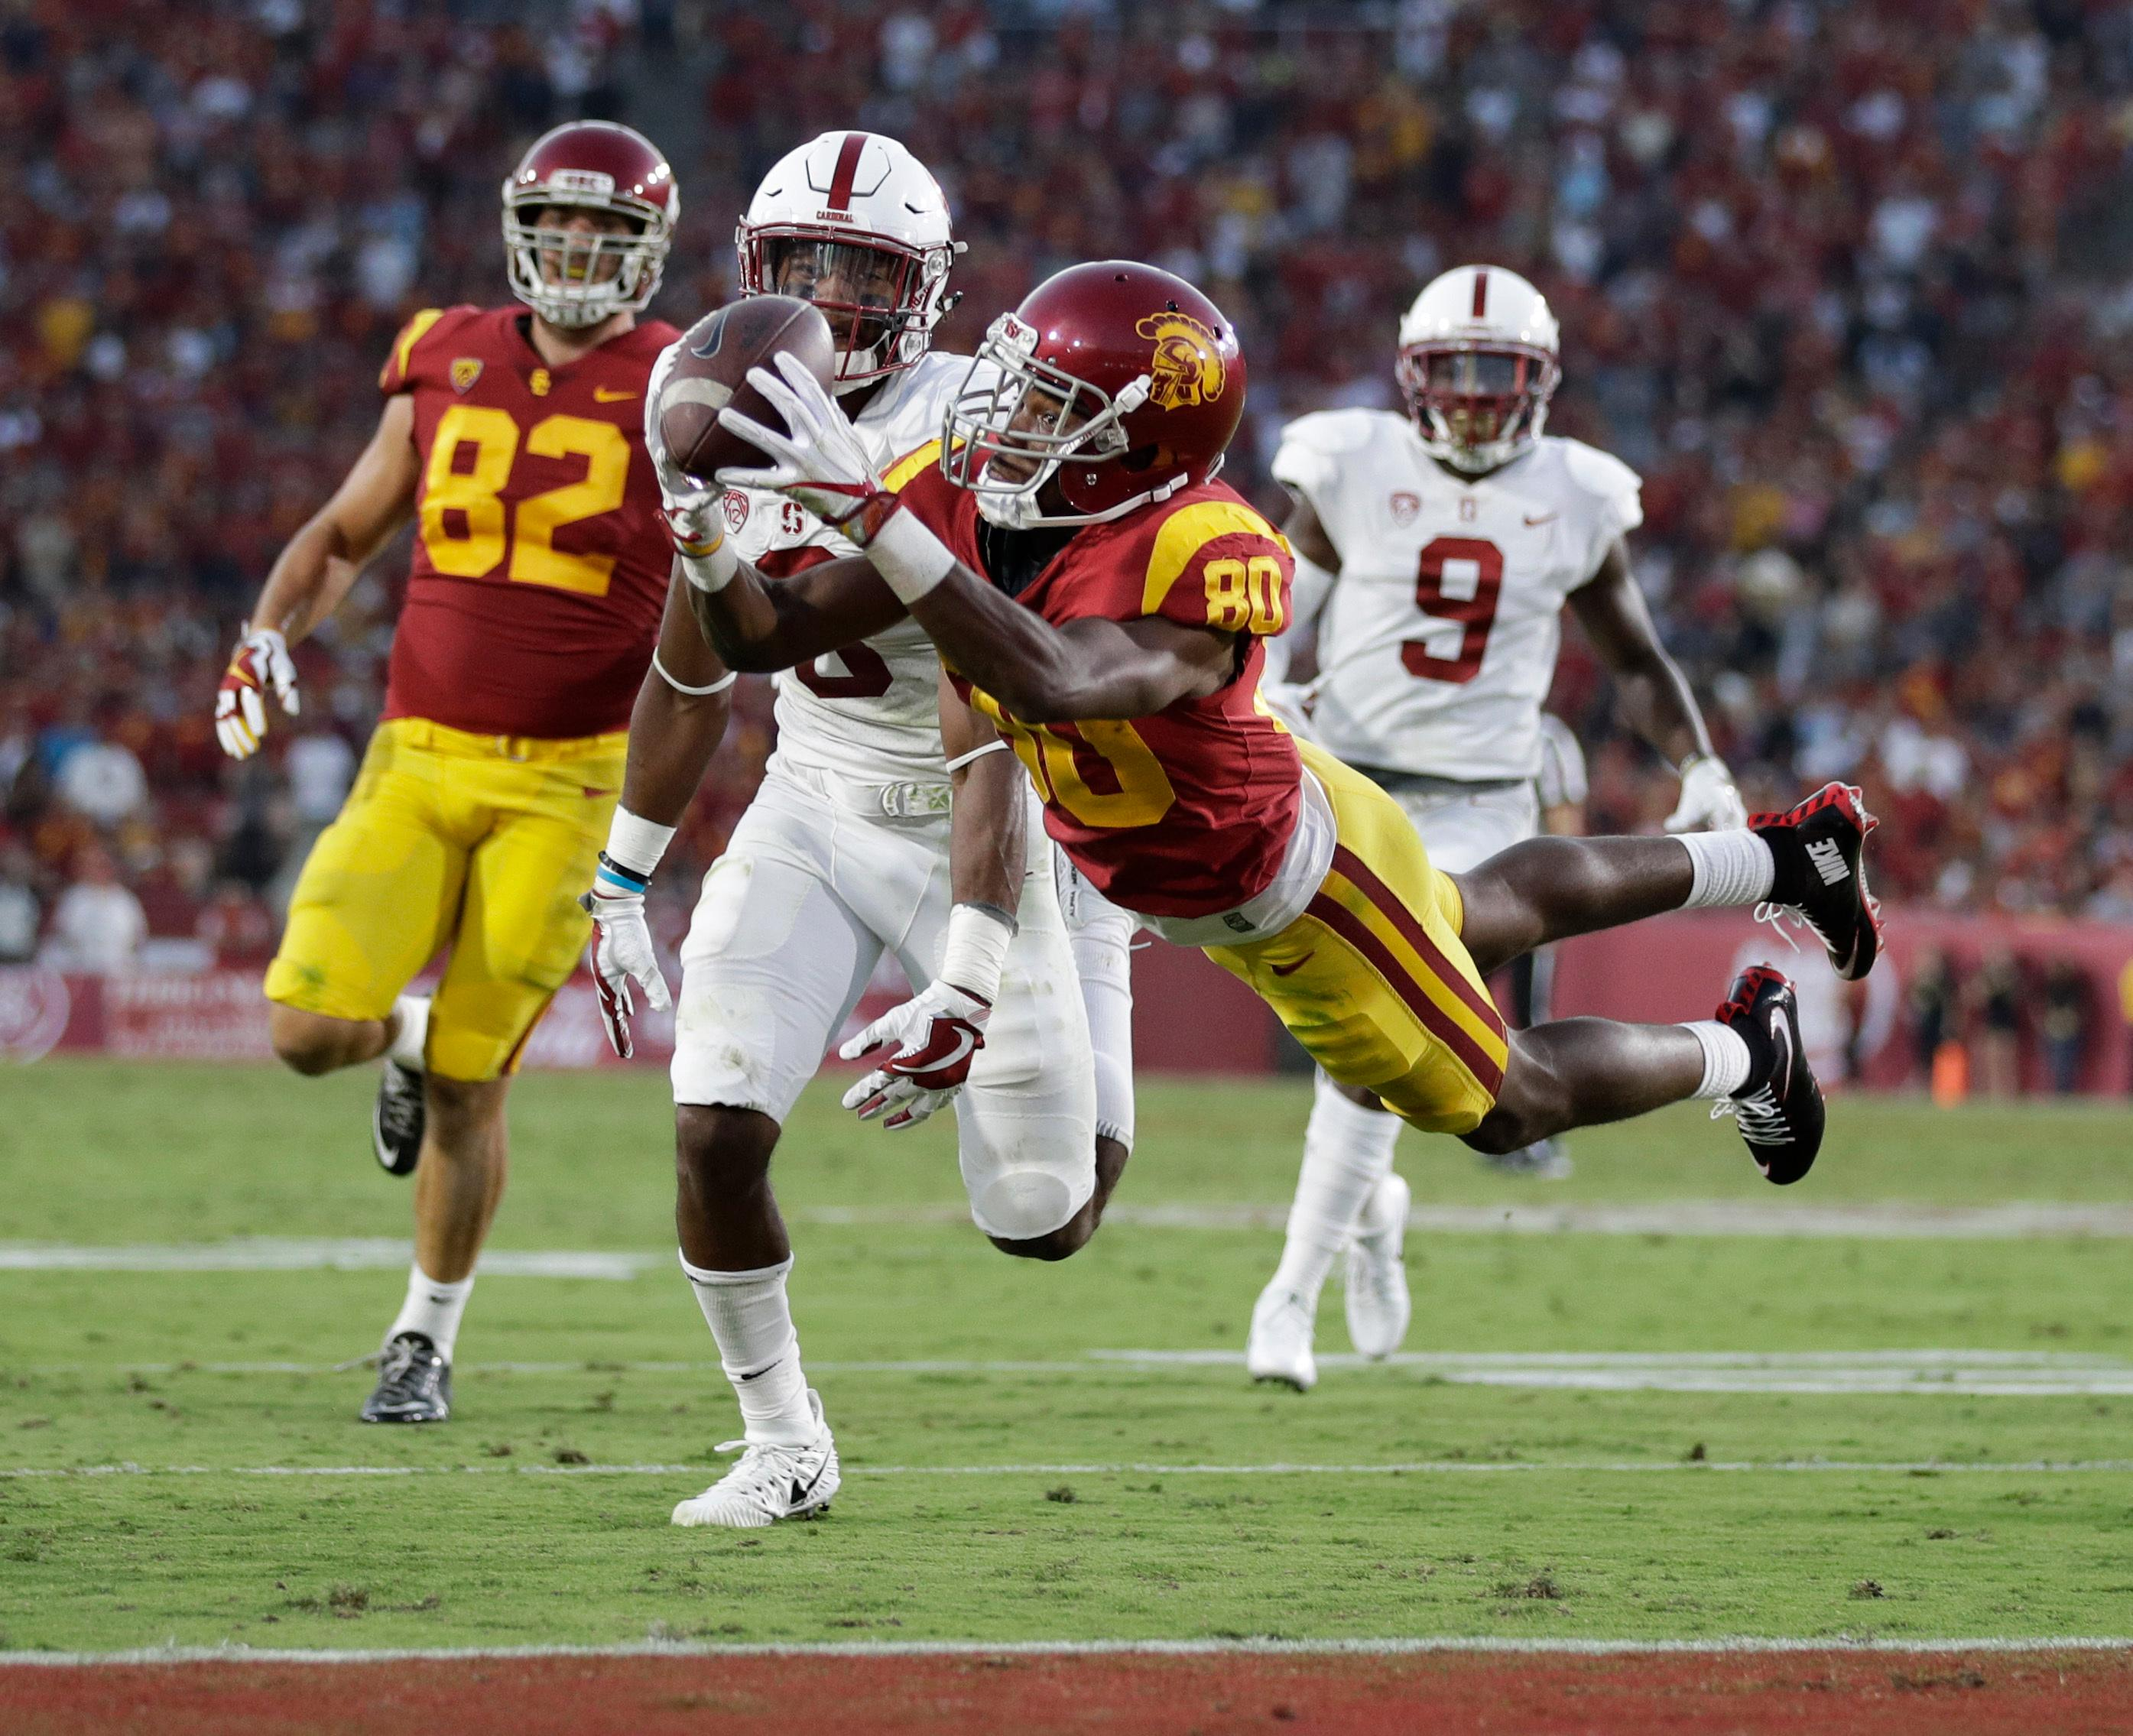 FILE - In this Sept. 9, 2017, file photo, Southern California's Deontay Burnett, center, catches a touchdown pass during the first half of an NCAA college football game against Stanford, in Los Angeles. Burnett was selected to the AP All-Conference Pac-12 team announced Thursday, Dec. 7, 2017. (AP Photo/Jae C. Hong, File)